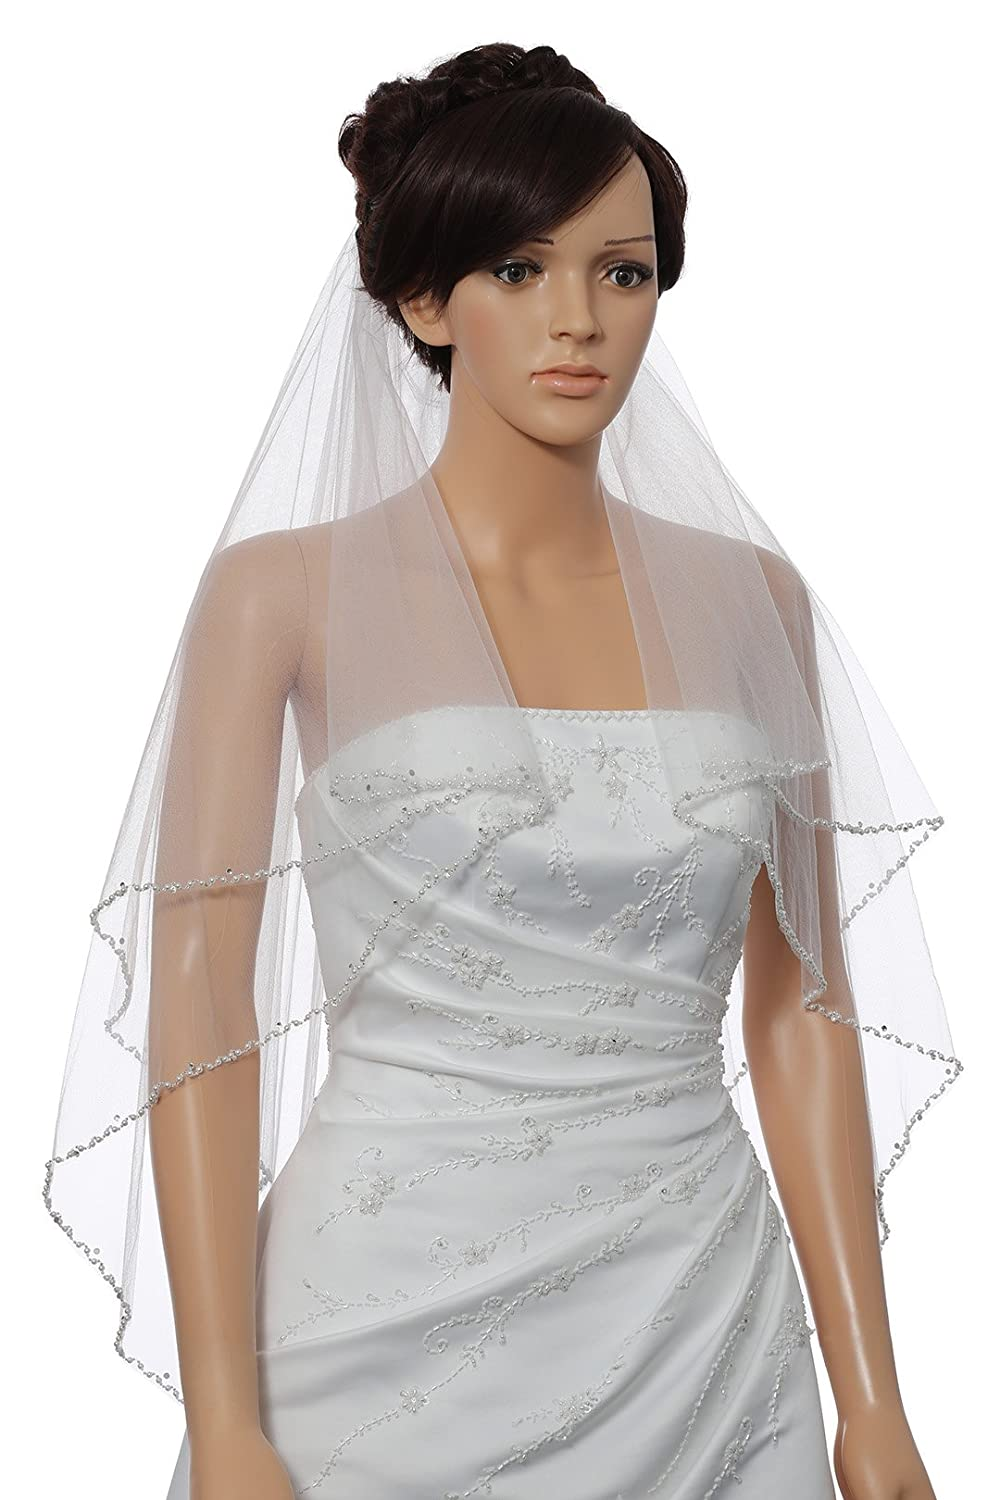 2T 2 Tier Wavy Pearl Crystal Beaded Bridal Wedding Veil - Ivory Fingertip Length 36